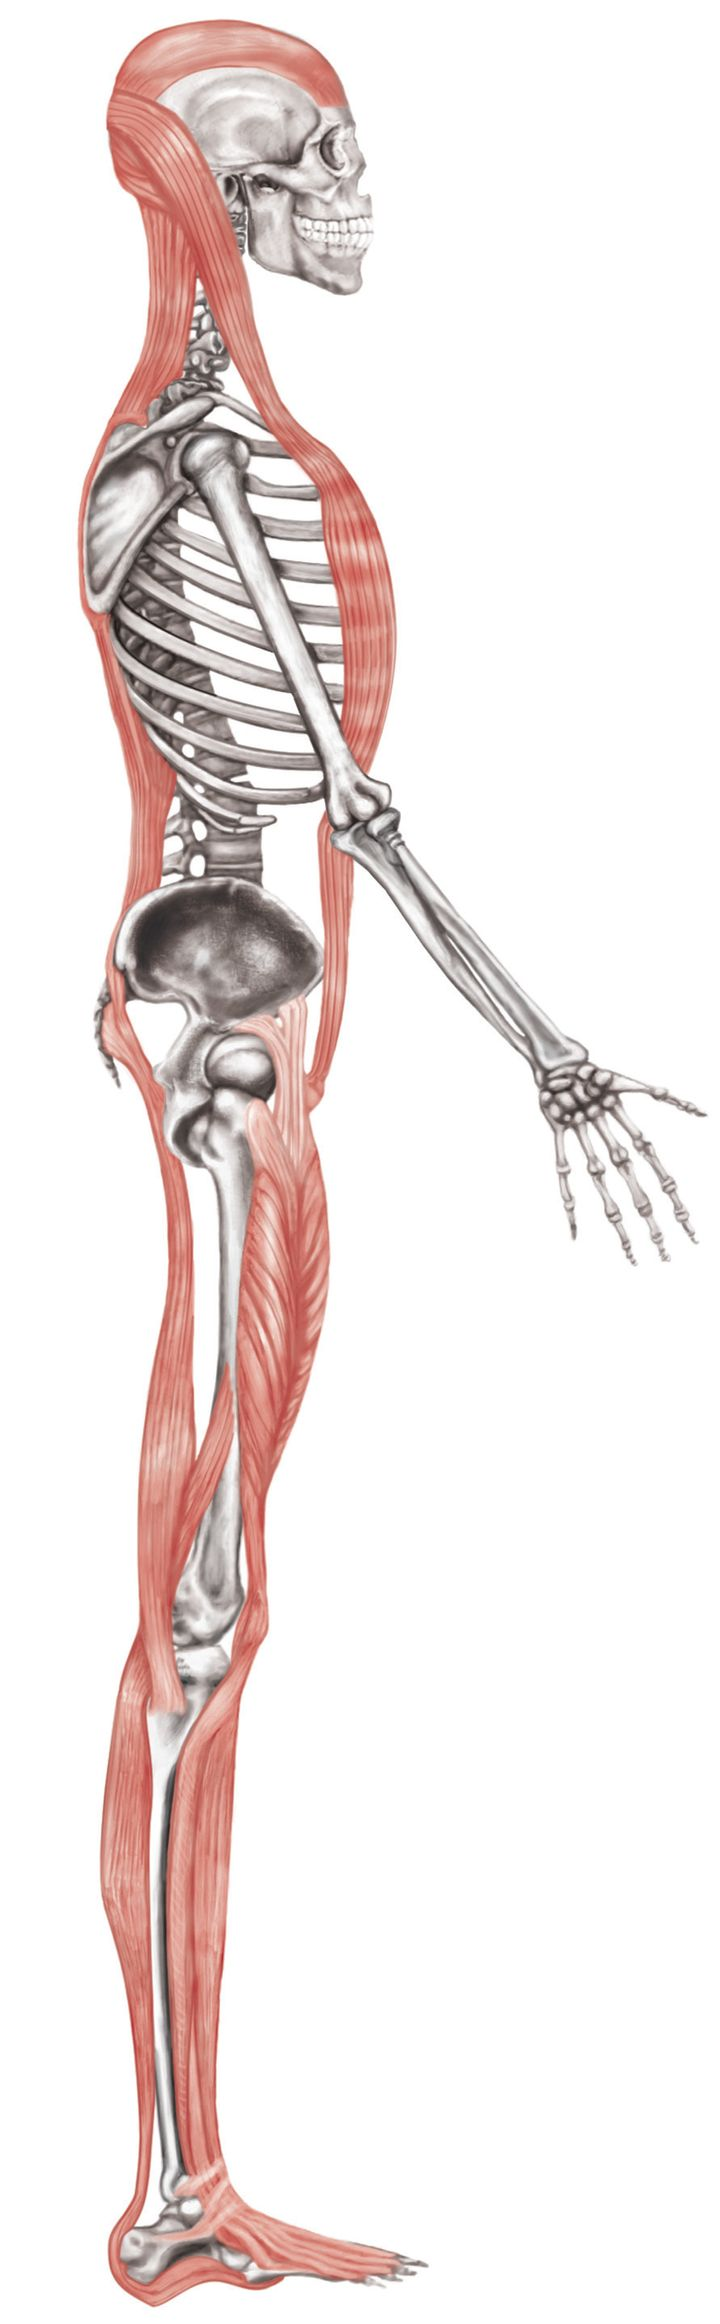 Anterior and Posterior Muscle/Fascia pulleys should be even. Most people have short fronts and subsequently long backs which